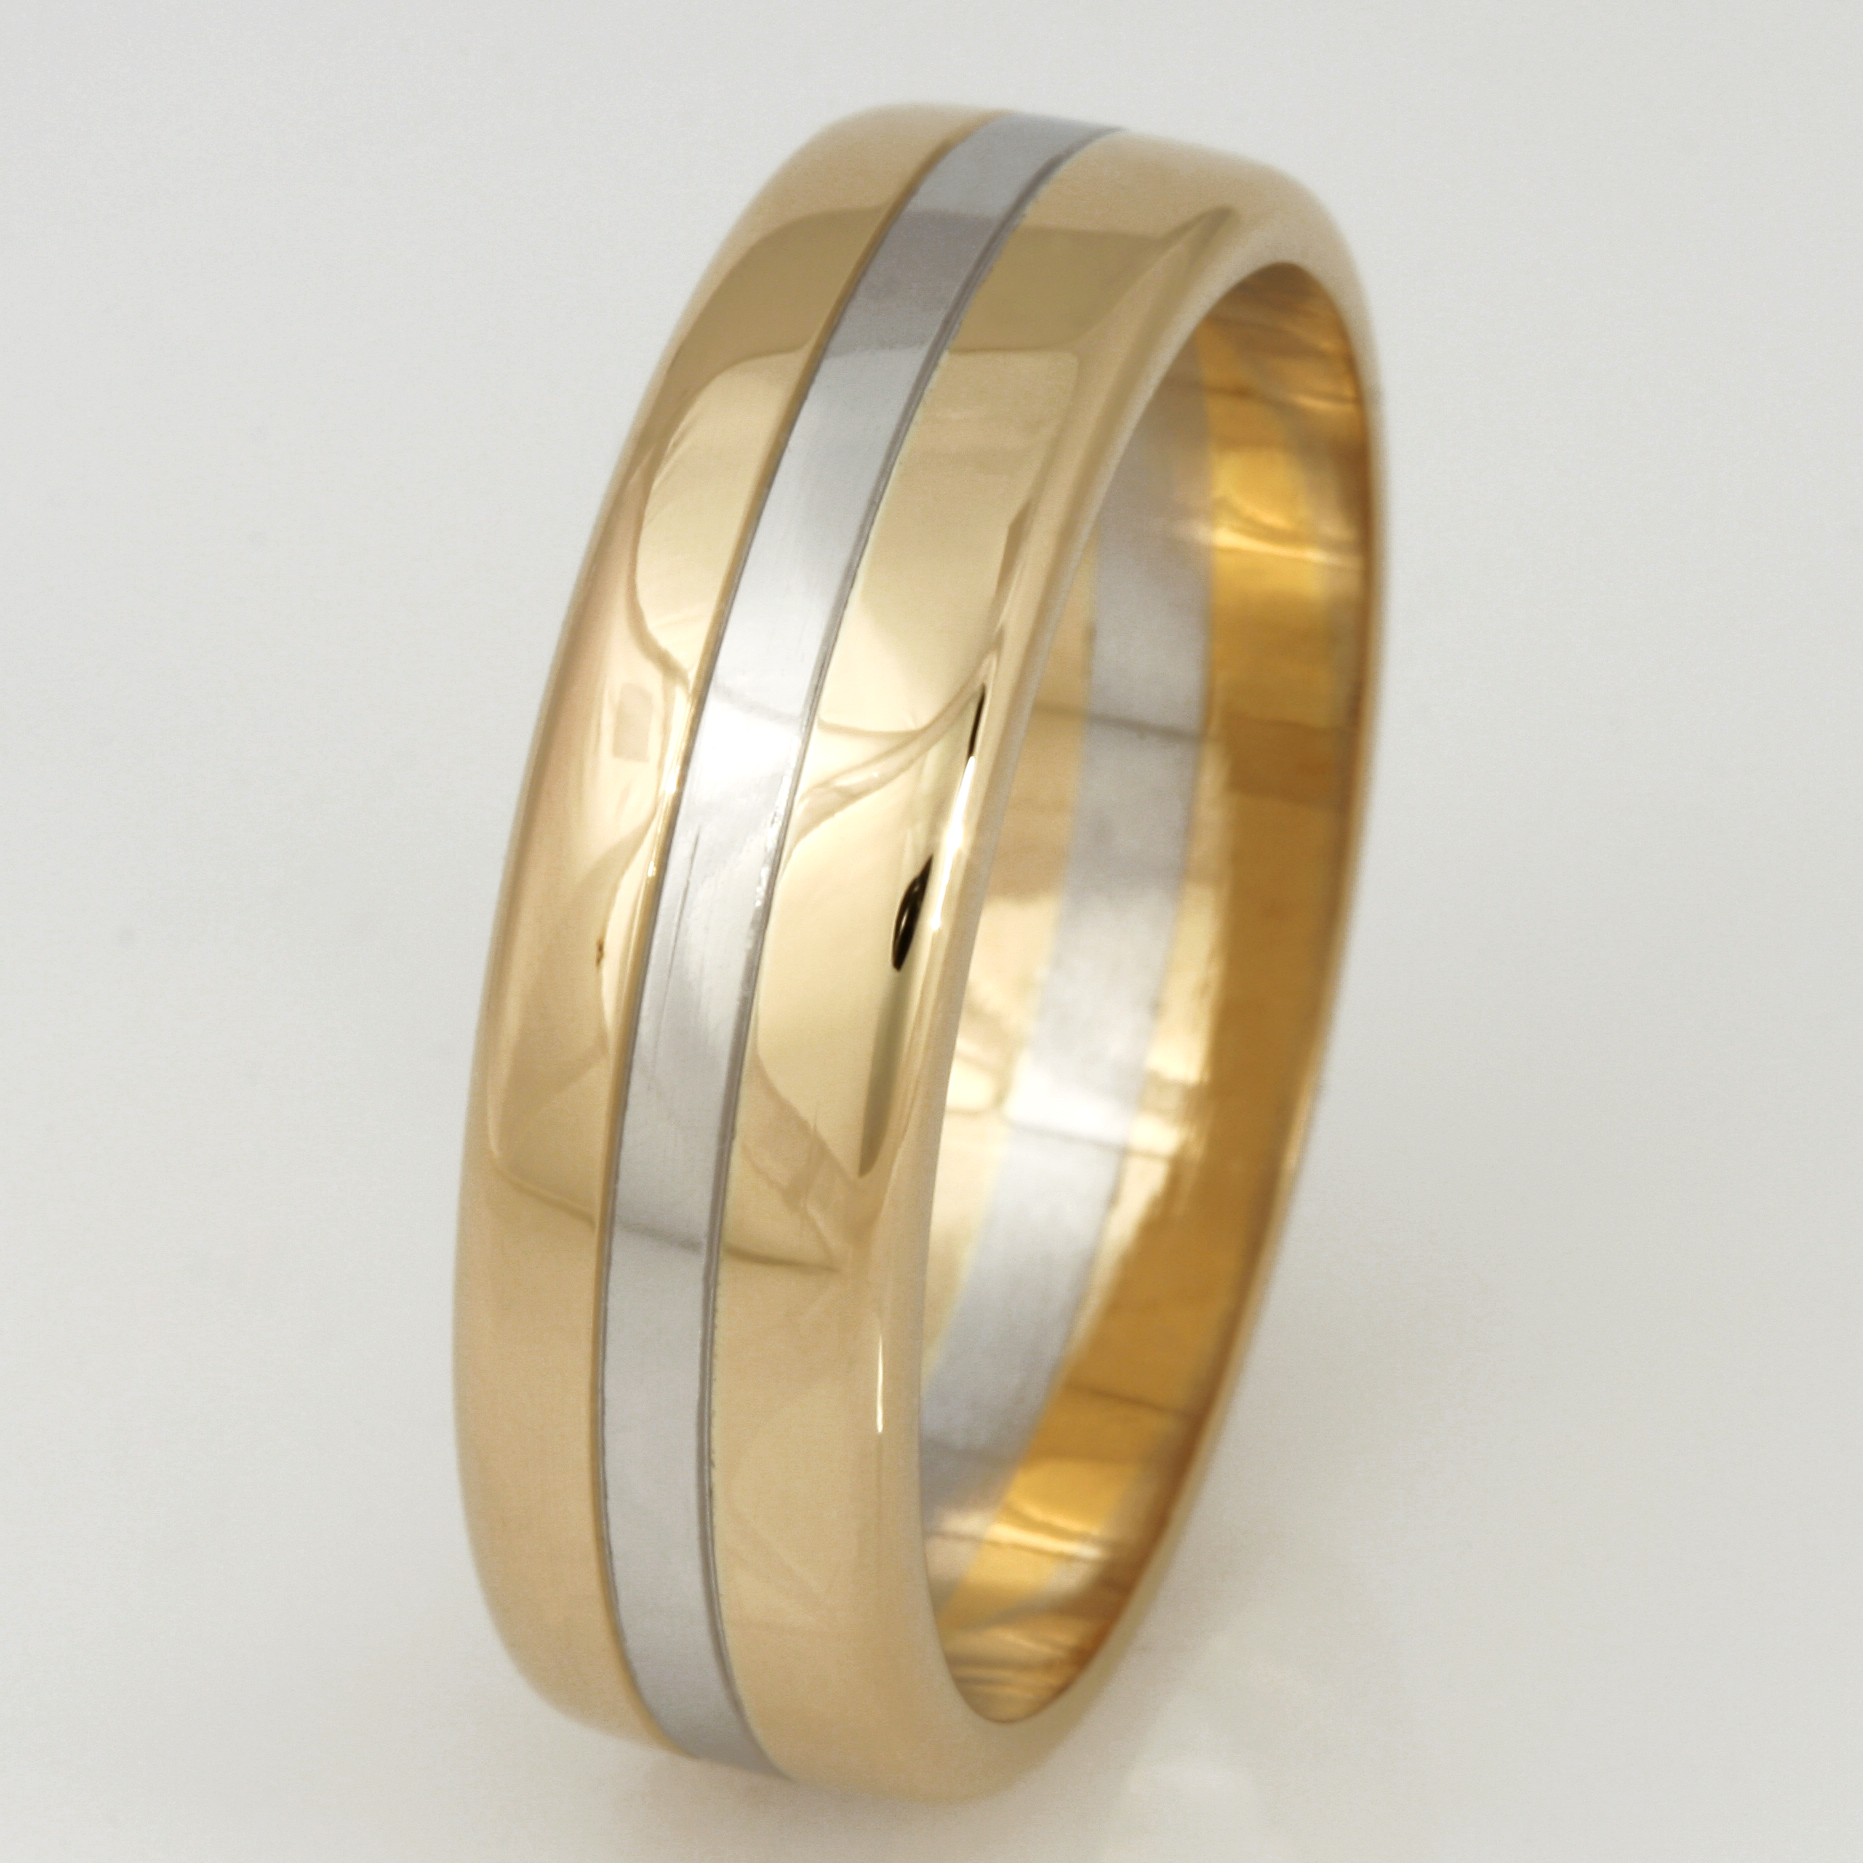 Handmade gents 18ct yellow gold and platinum wedding ring